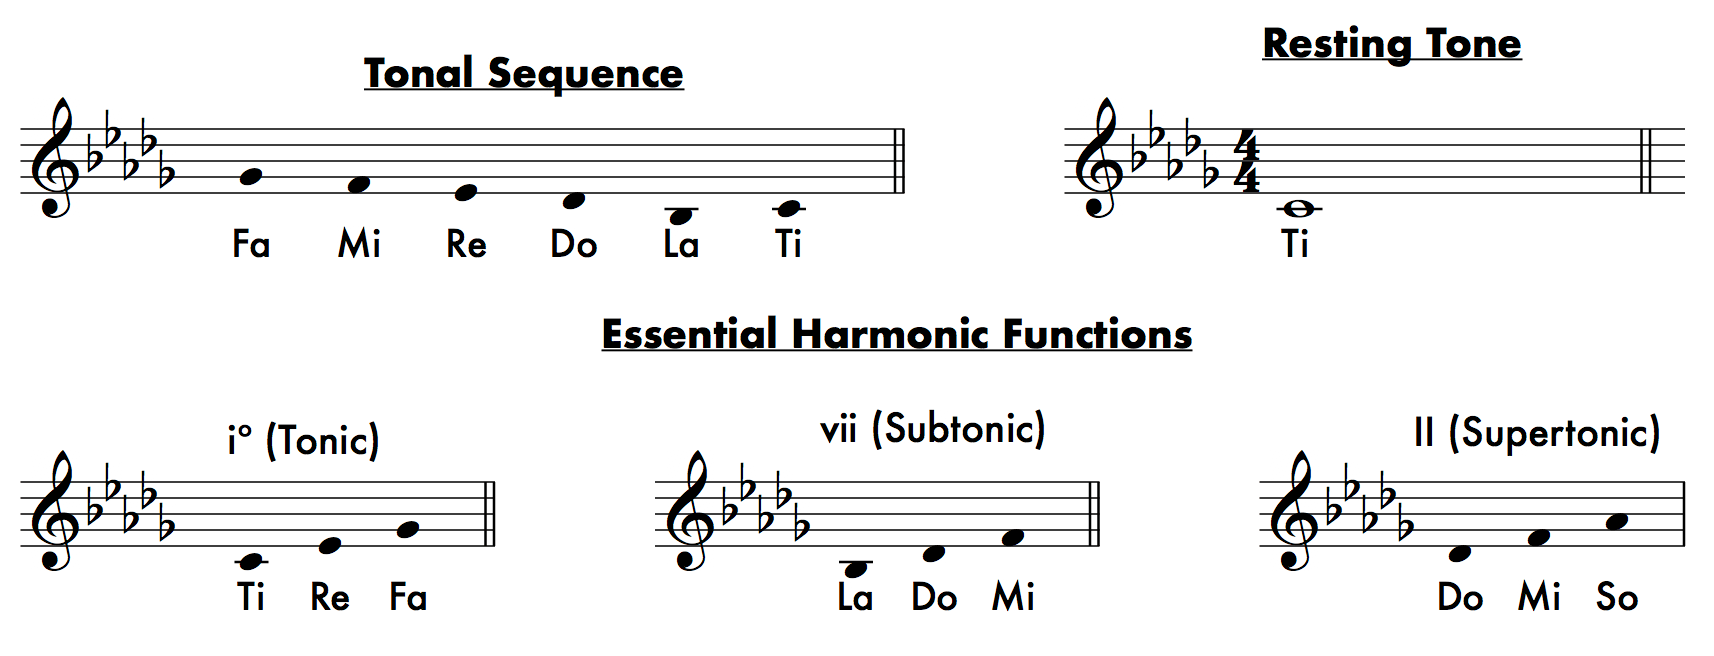 Locrian Tonality - From Major to Locrian: An Overview of The Tonalities